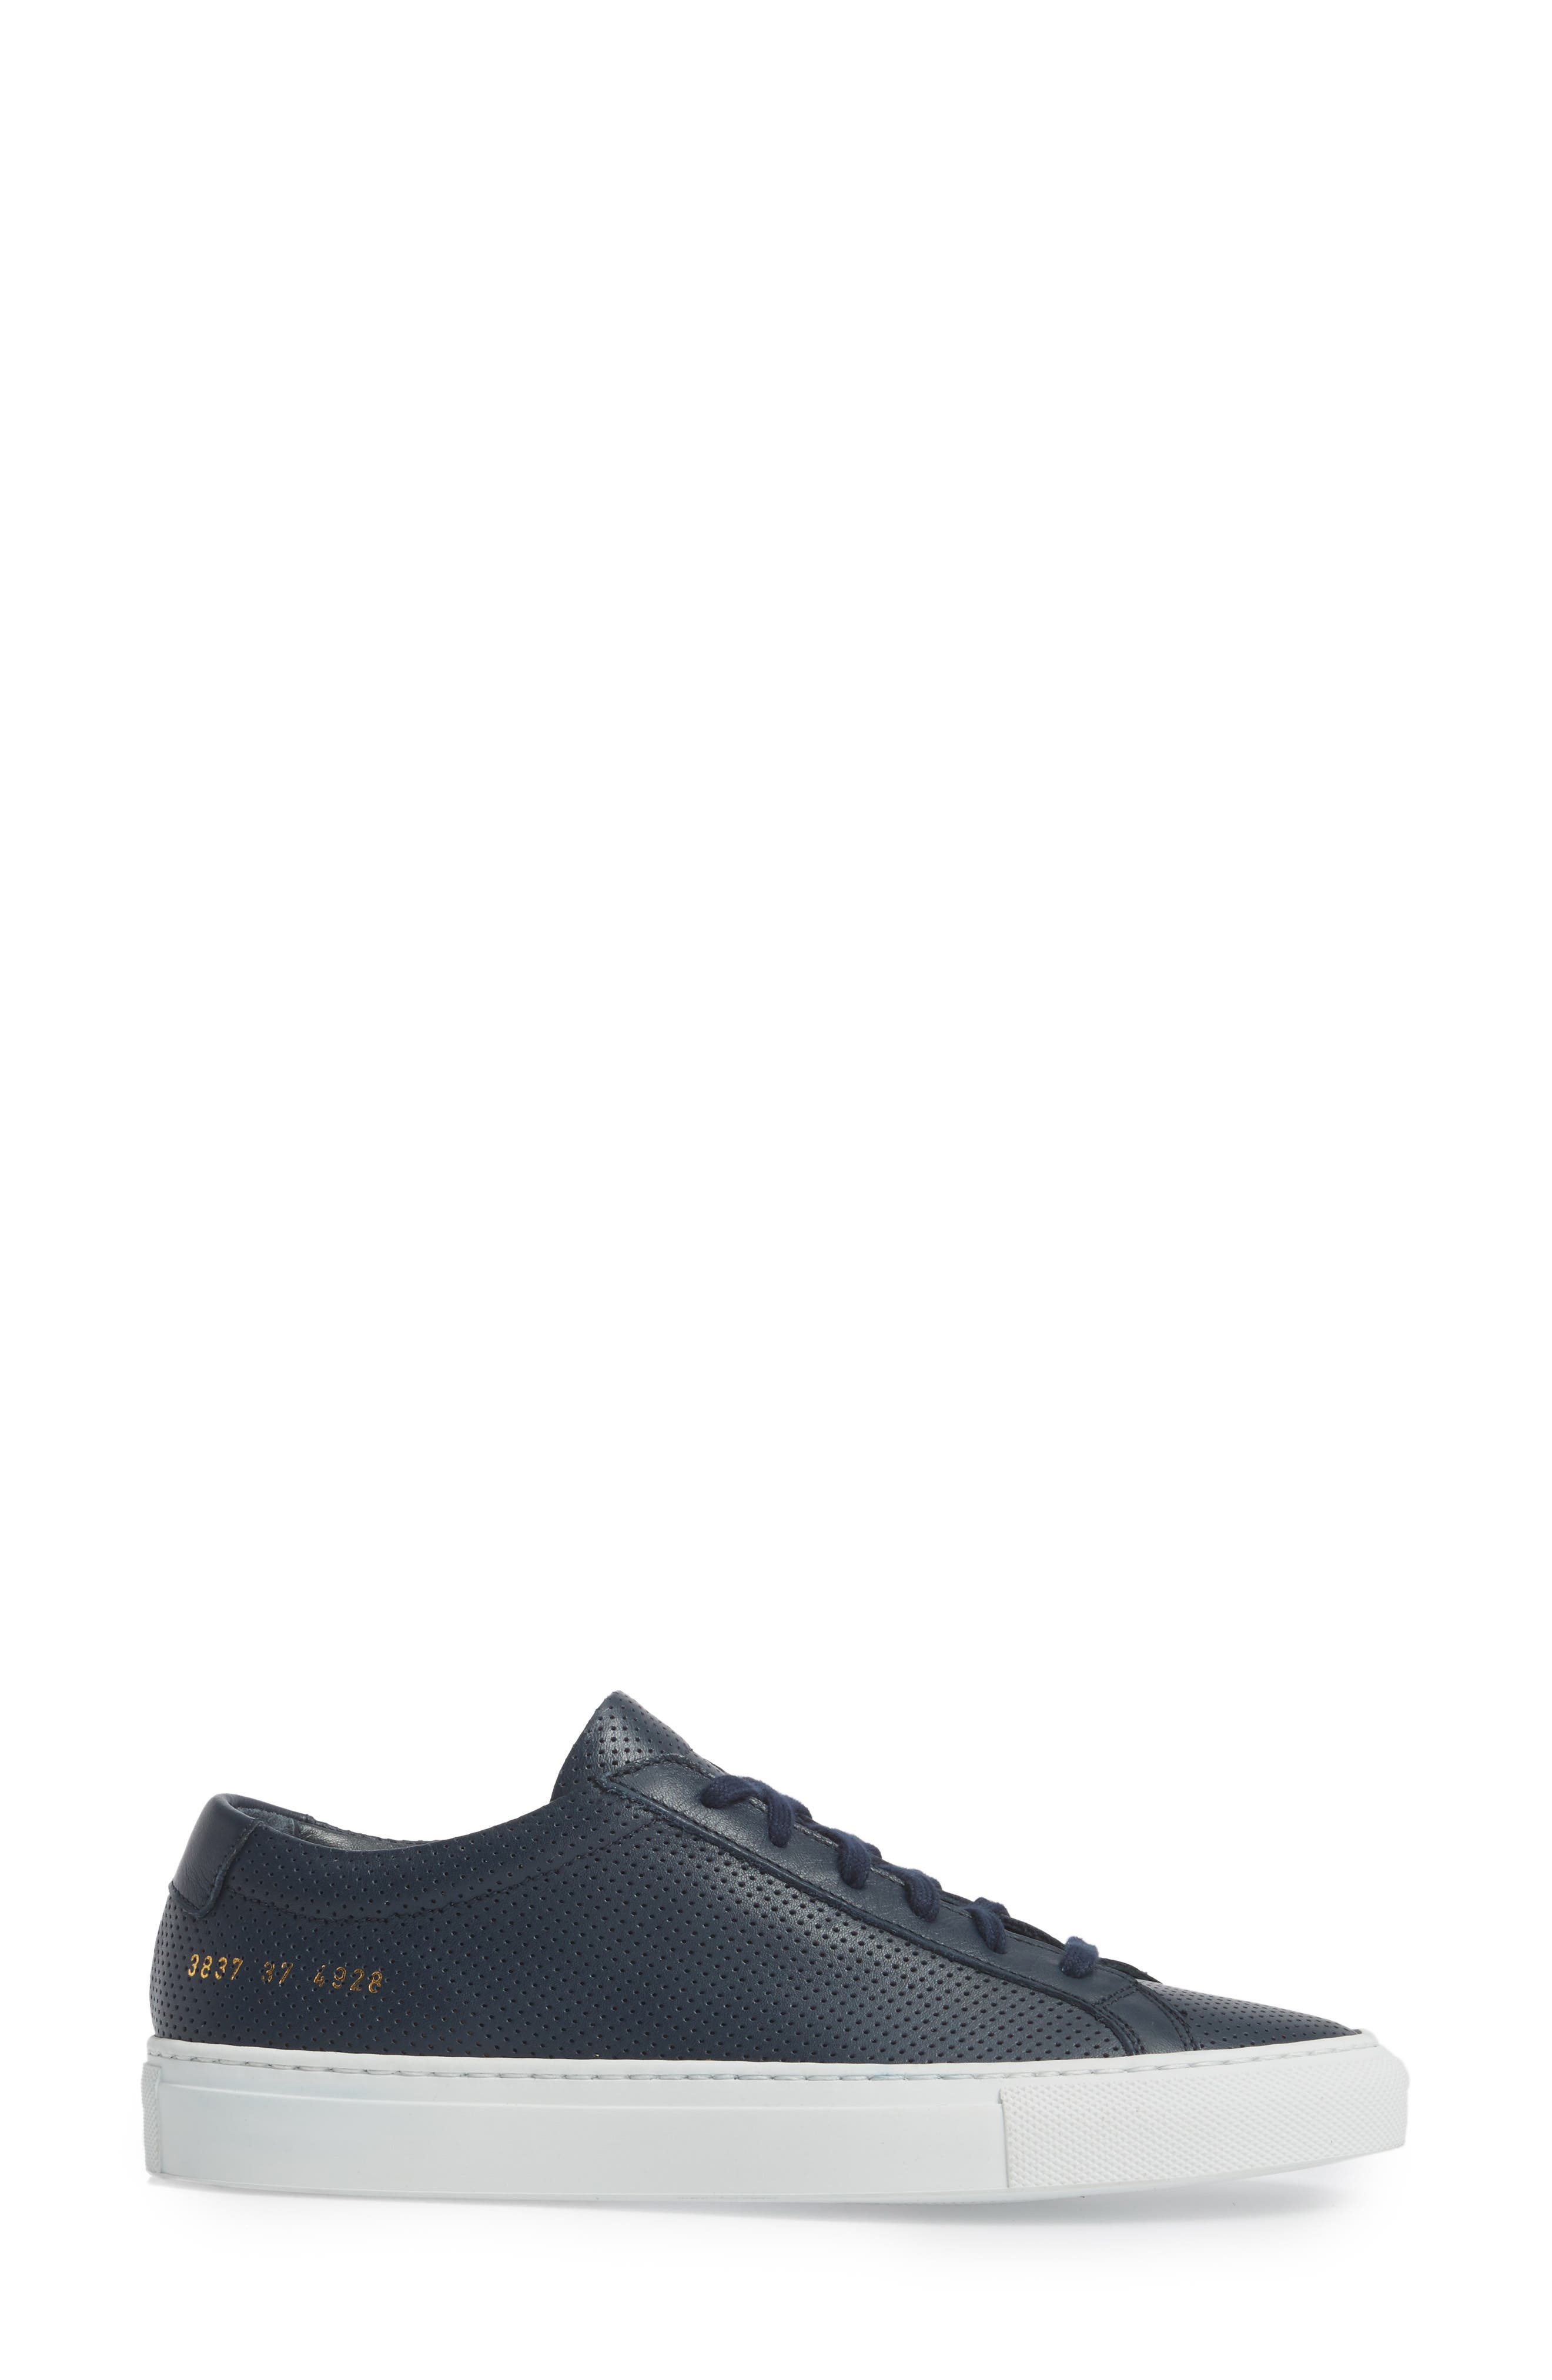 Original Achilles Perforated Low Sneaker,                             Alternate thumbnail 3, color,                             Navy